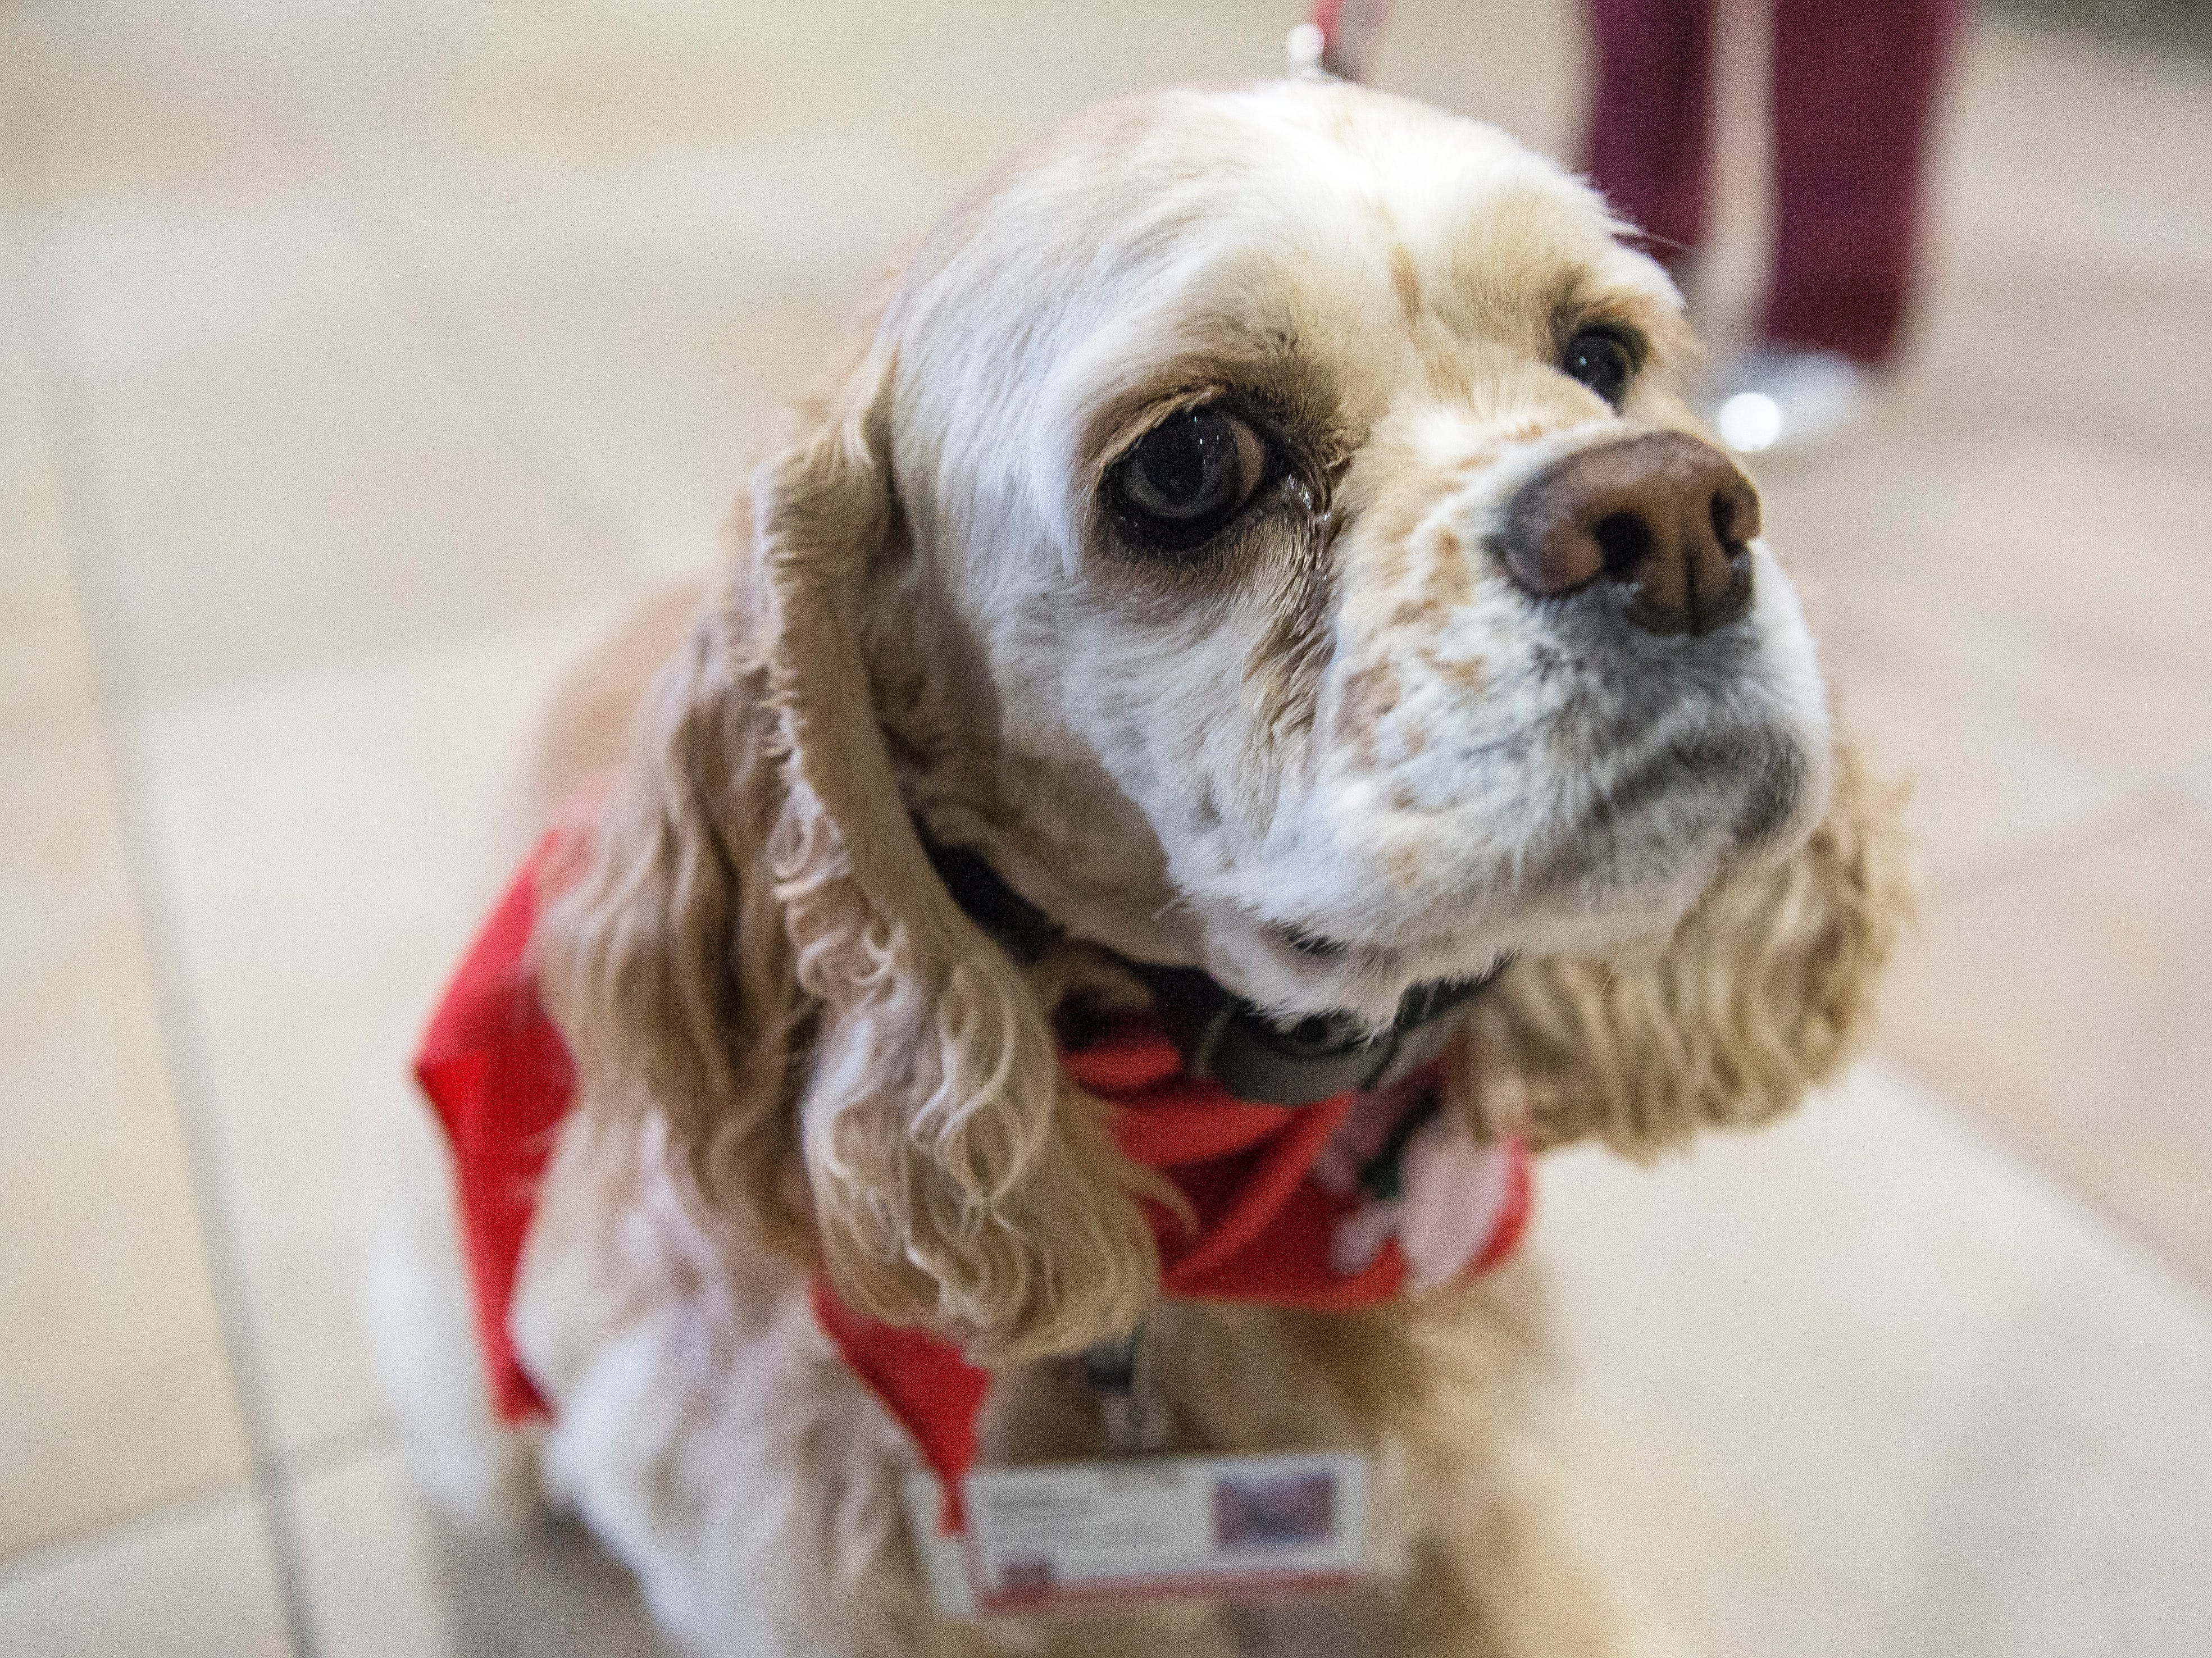 Barb Crawford's dog Cookie walks through the halls of IU Health Ball Memorial Hospital to help cheer up staff. Cookie along with other dogs are part of the hospital's comfort canines program.